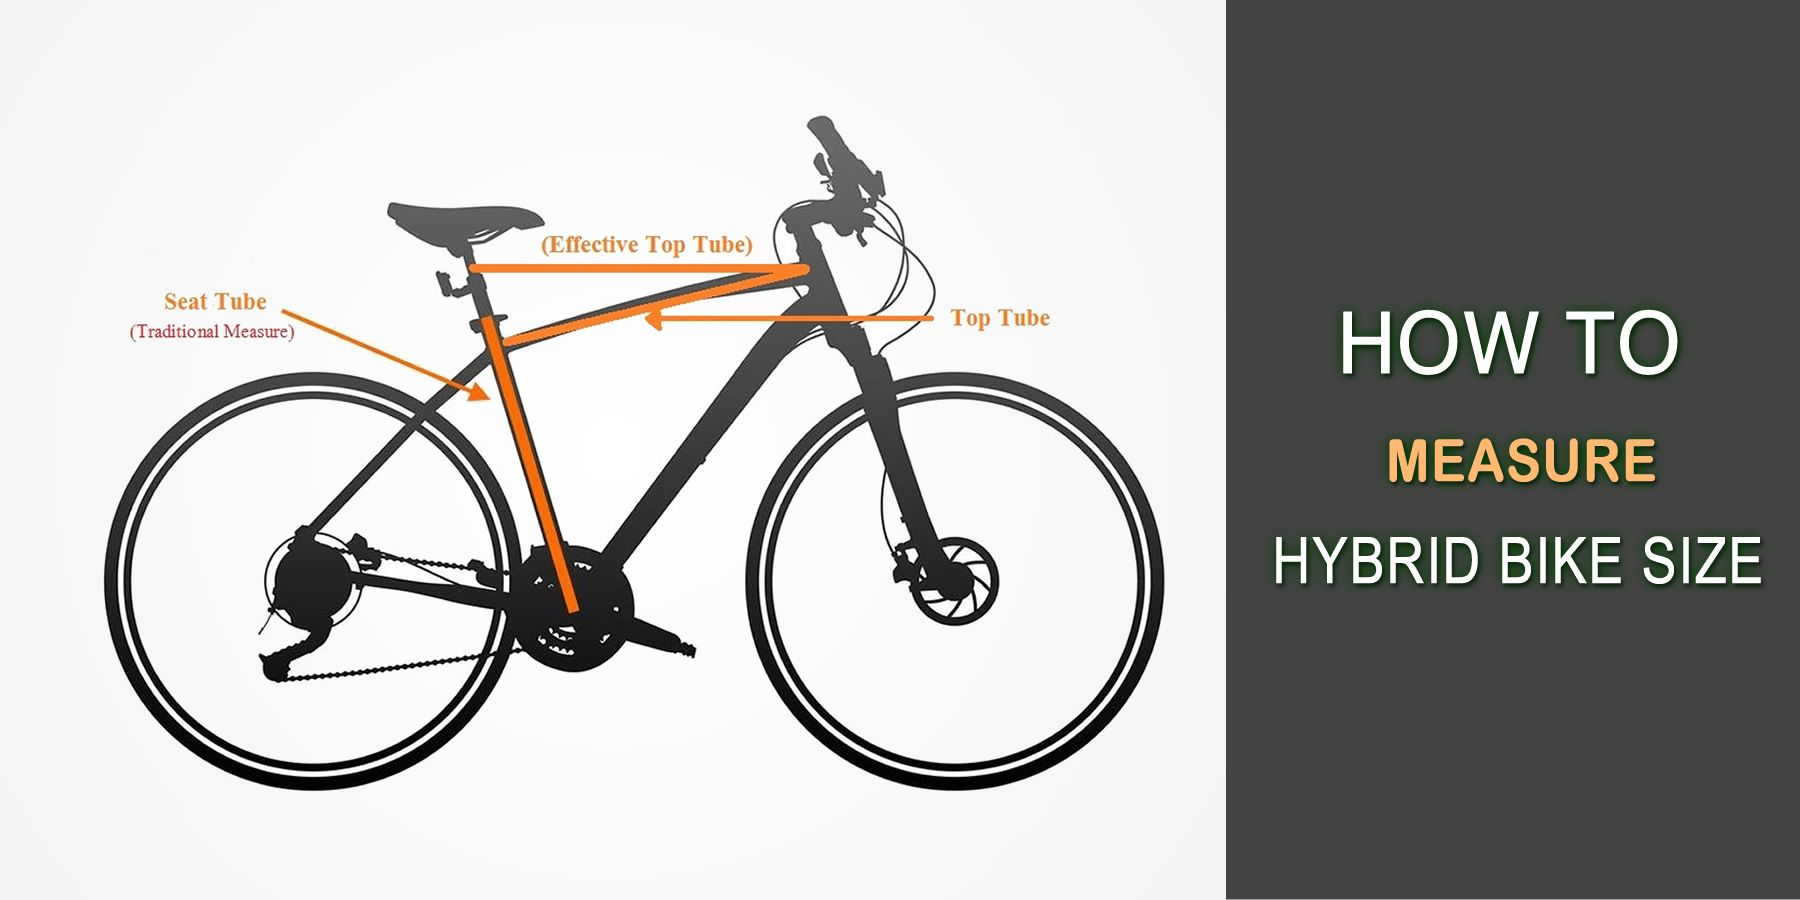 How To Measure Hybrid Bike Size Step By Step Guide Hybrid Bike